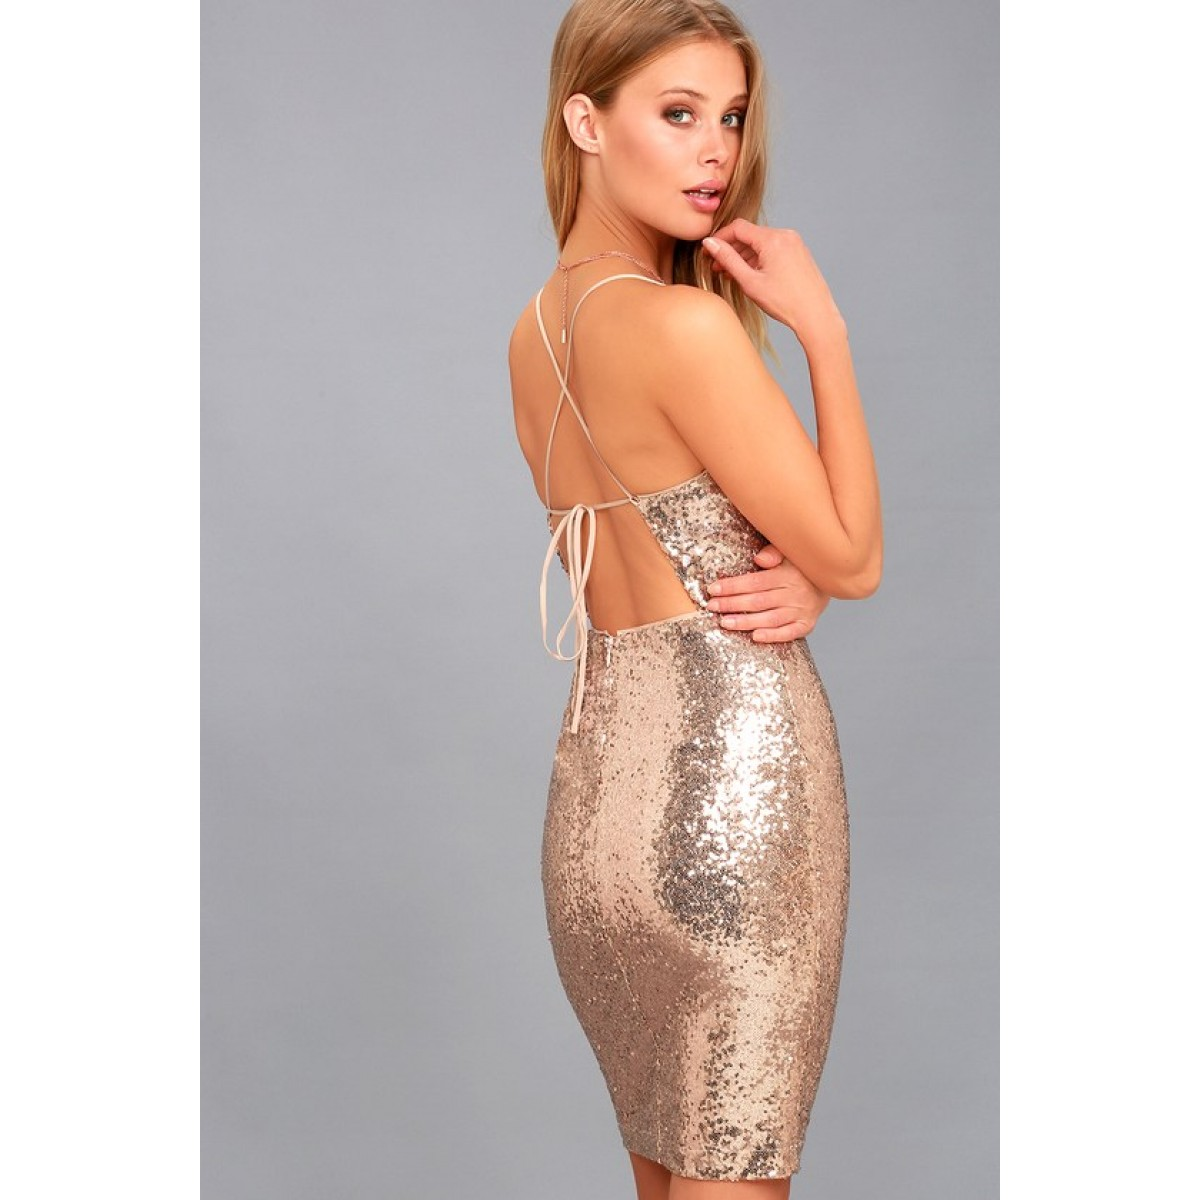 8d900c4c66 ... Gold Sequin Bodycon Dress. Be the first to review this product